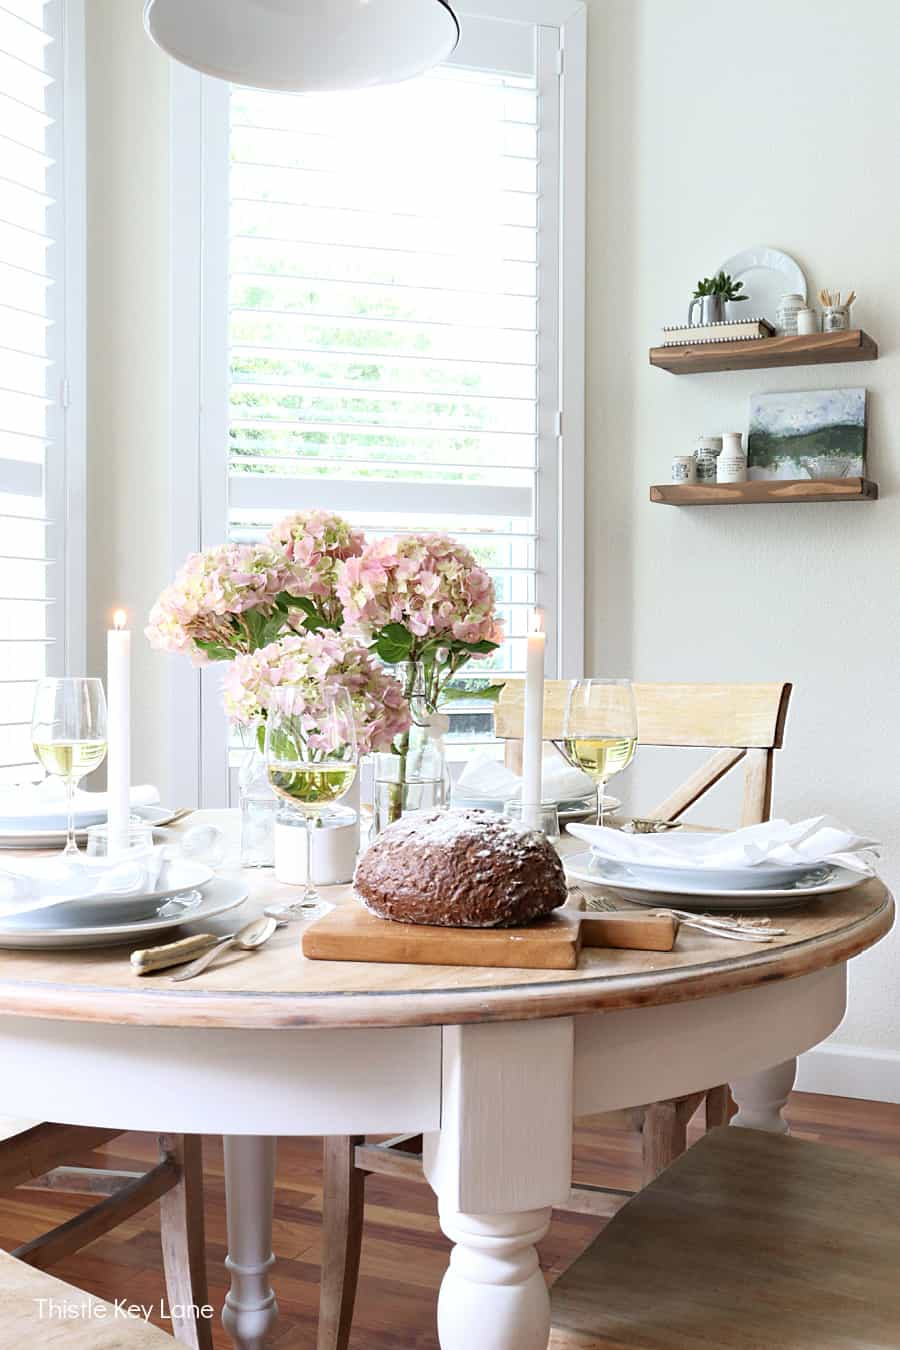 White round table with pink hydrangea flowers in bottles. Summer Tablescape With Glass Bottle Vases.